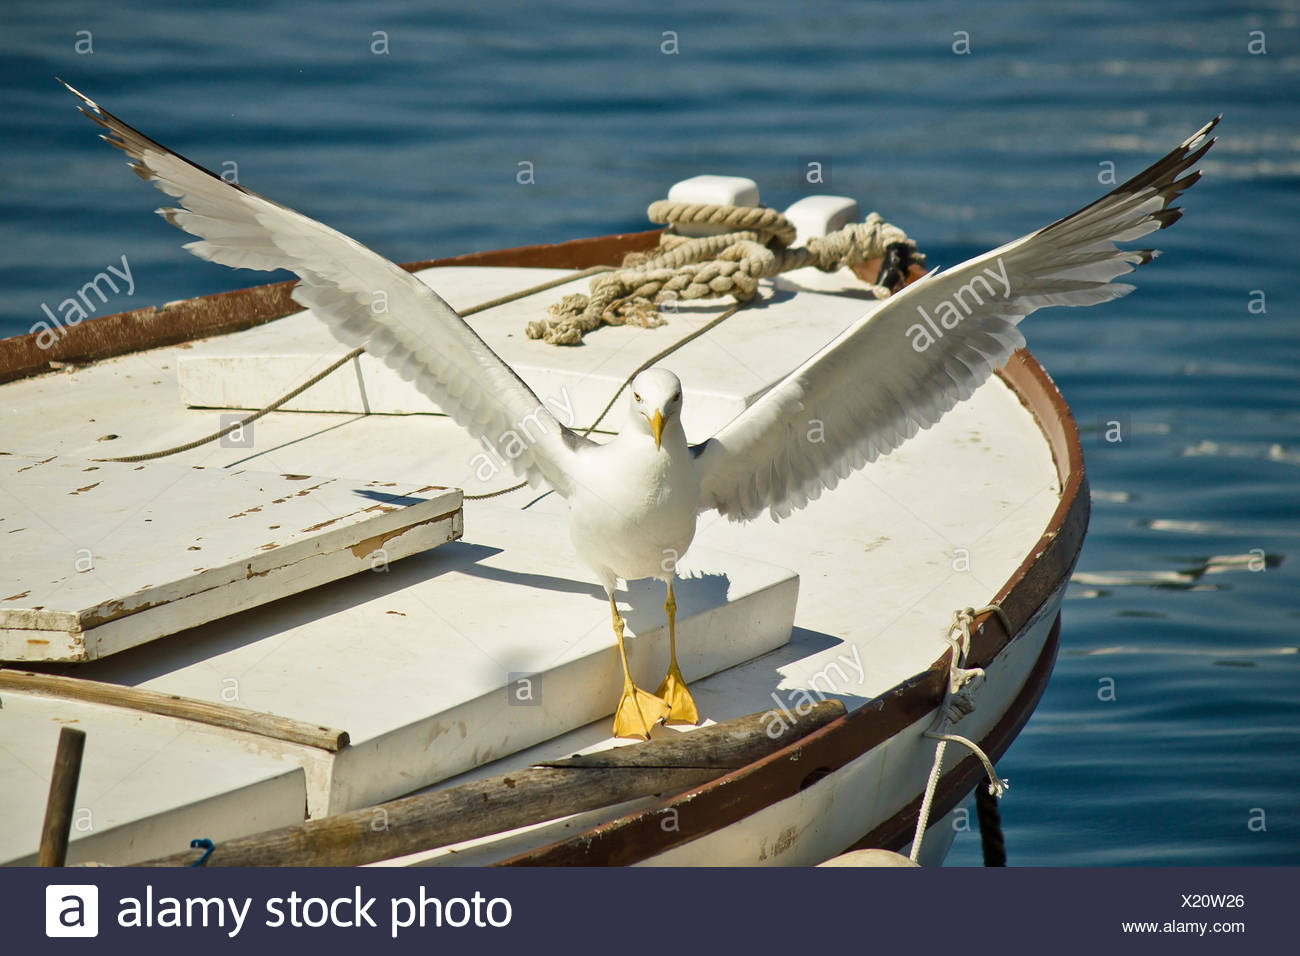 seagull flown away from boat - Stock Image